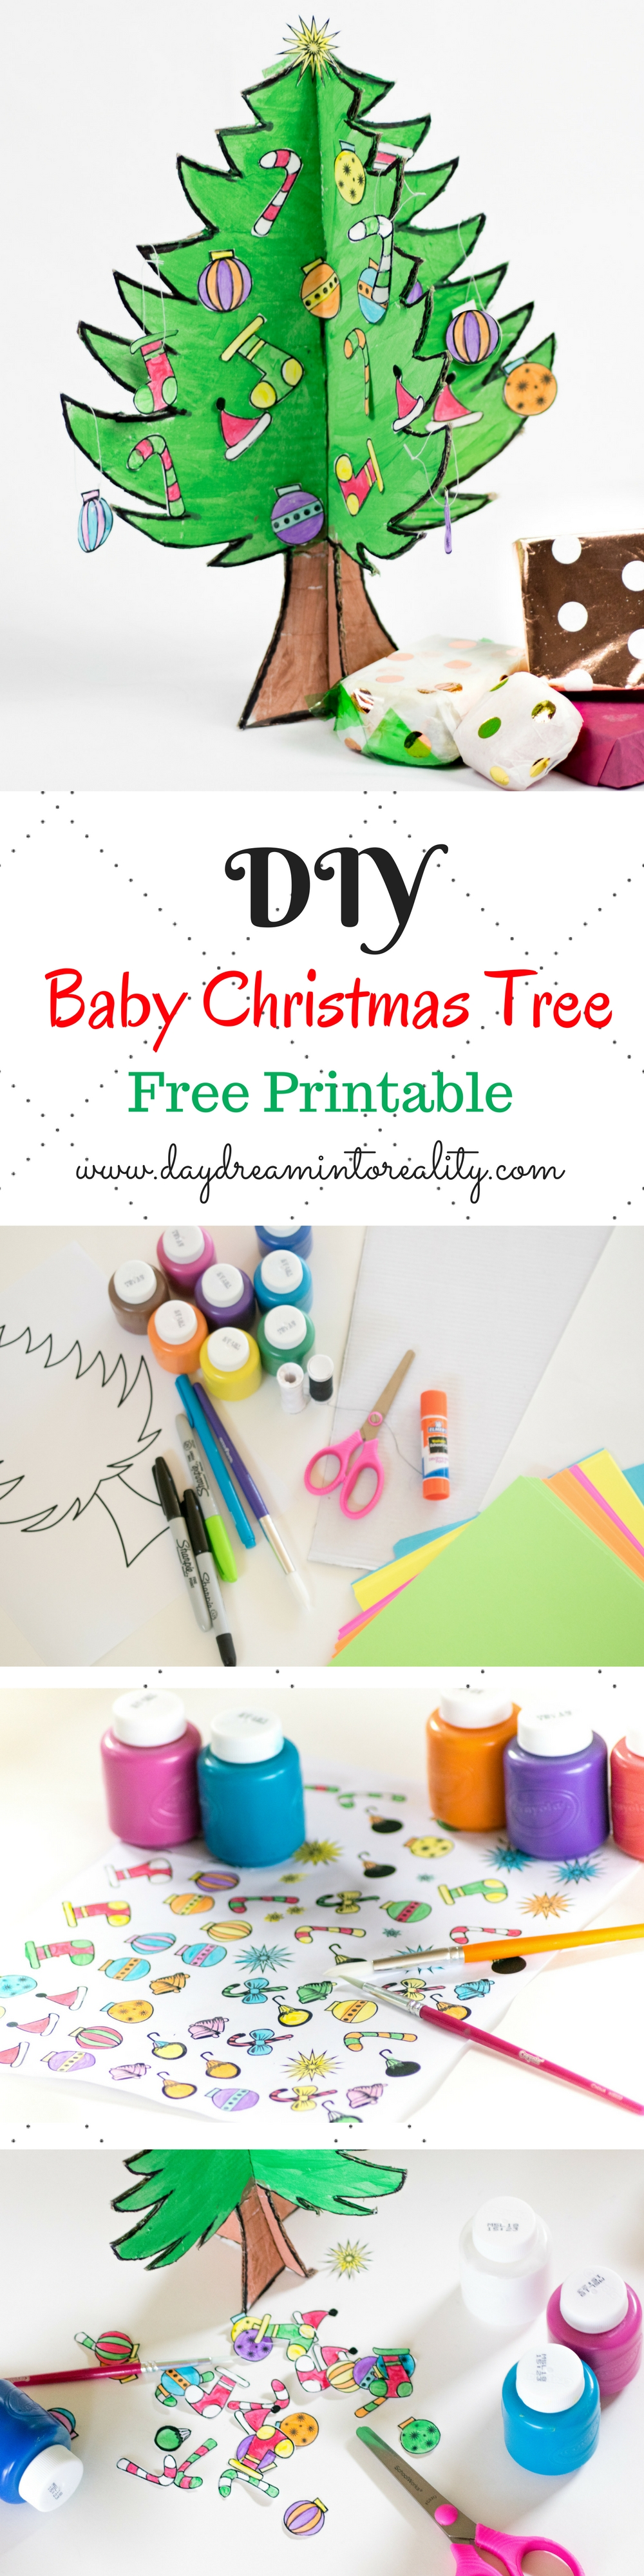 DIY Baby Christmas Tree With Free Printable!!